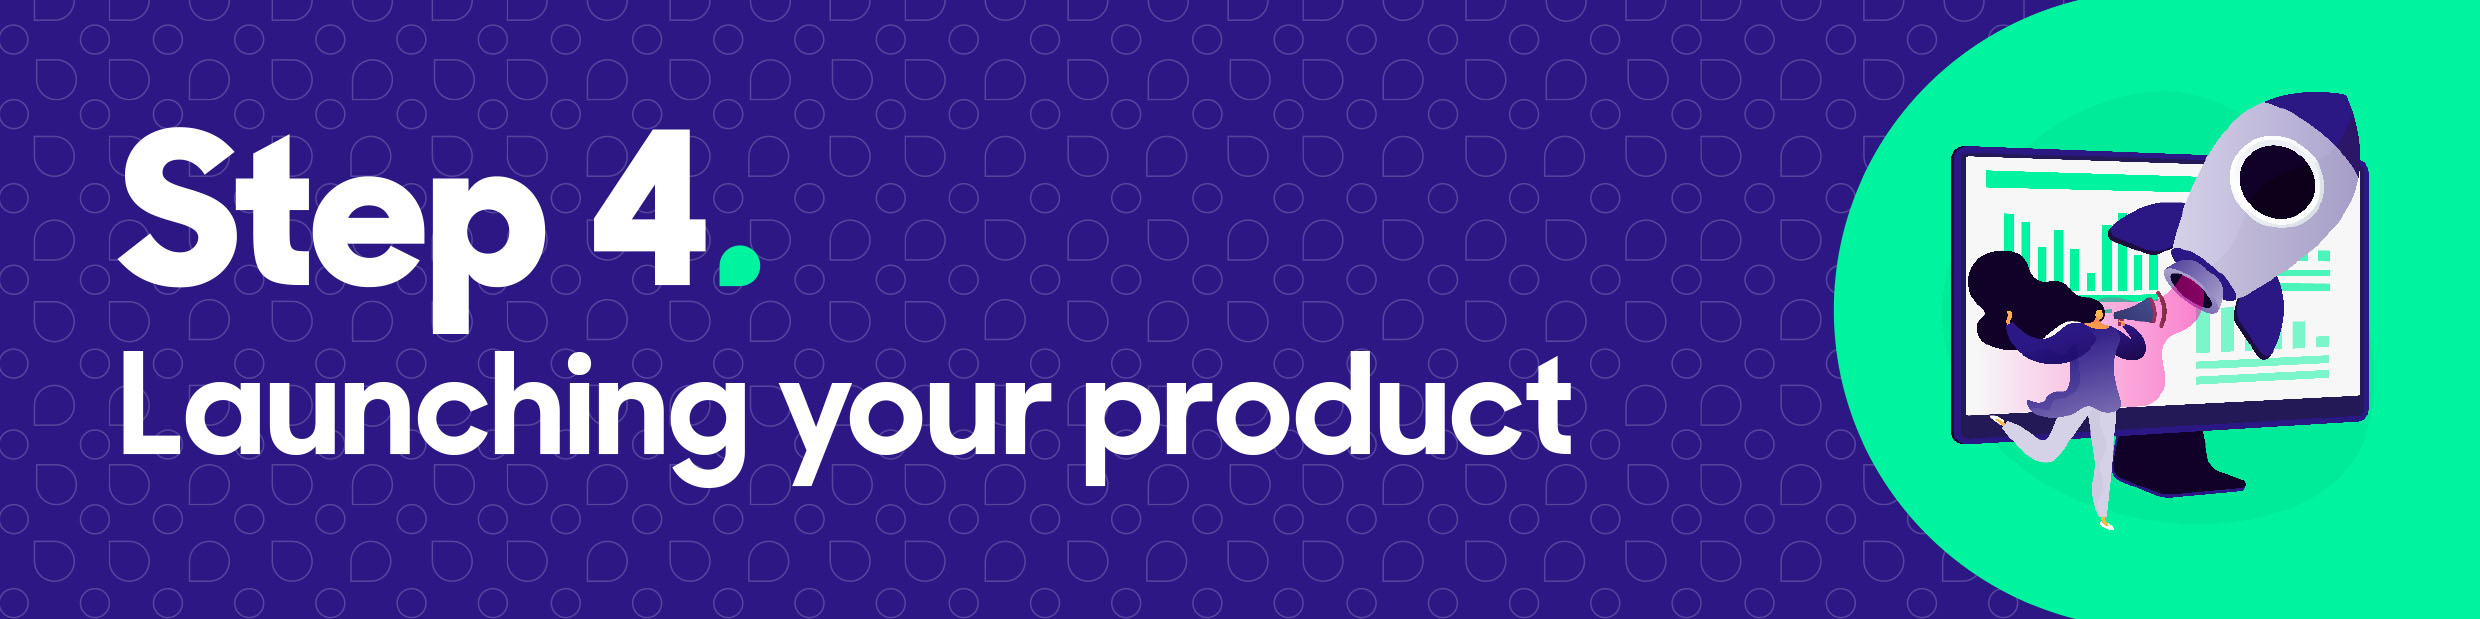 Step 4: Launching Your Product